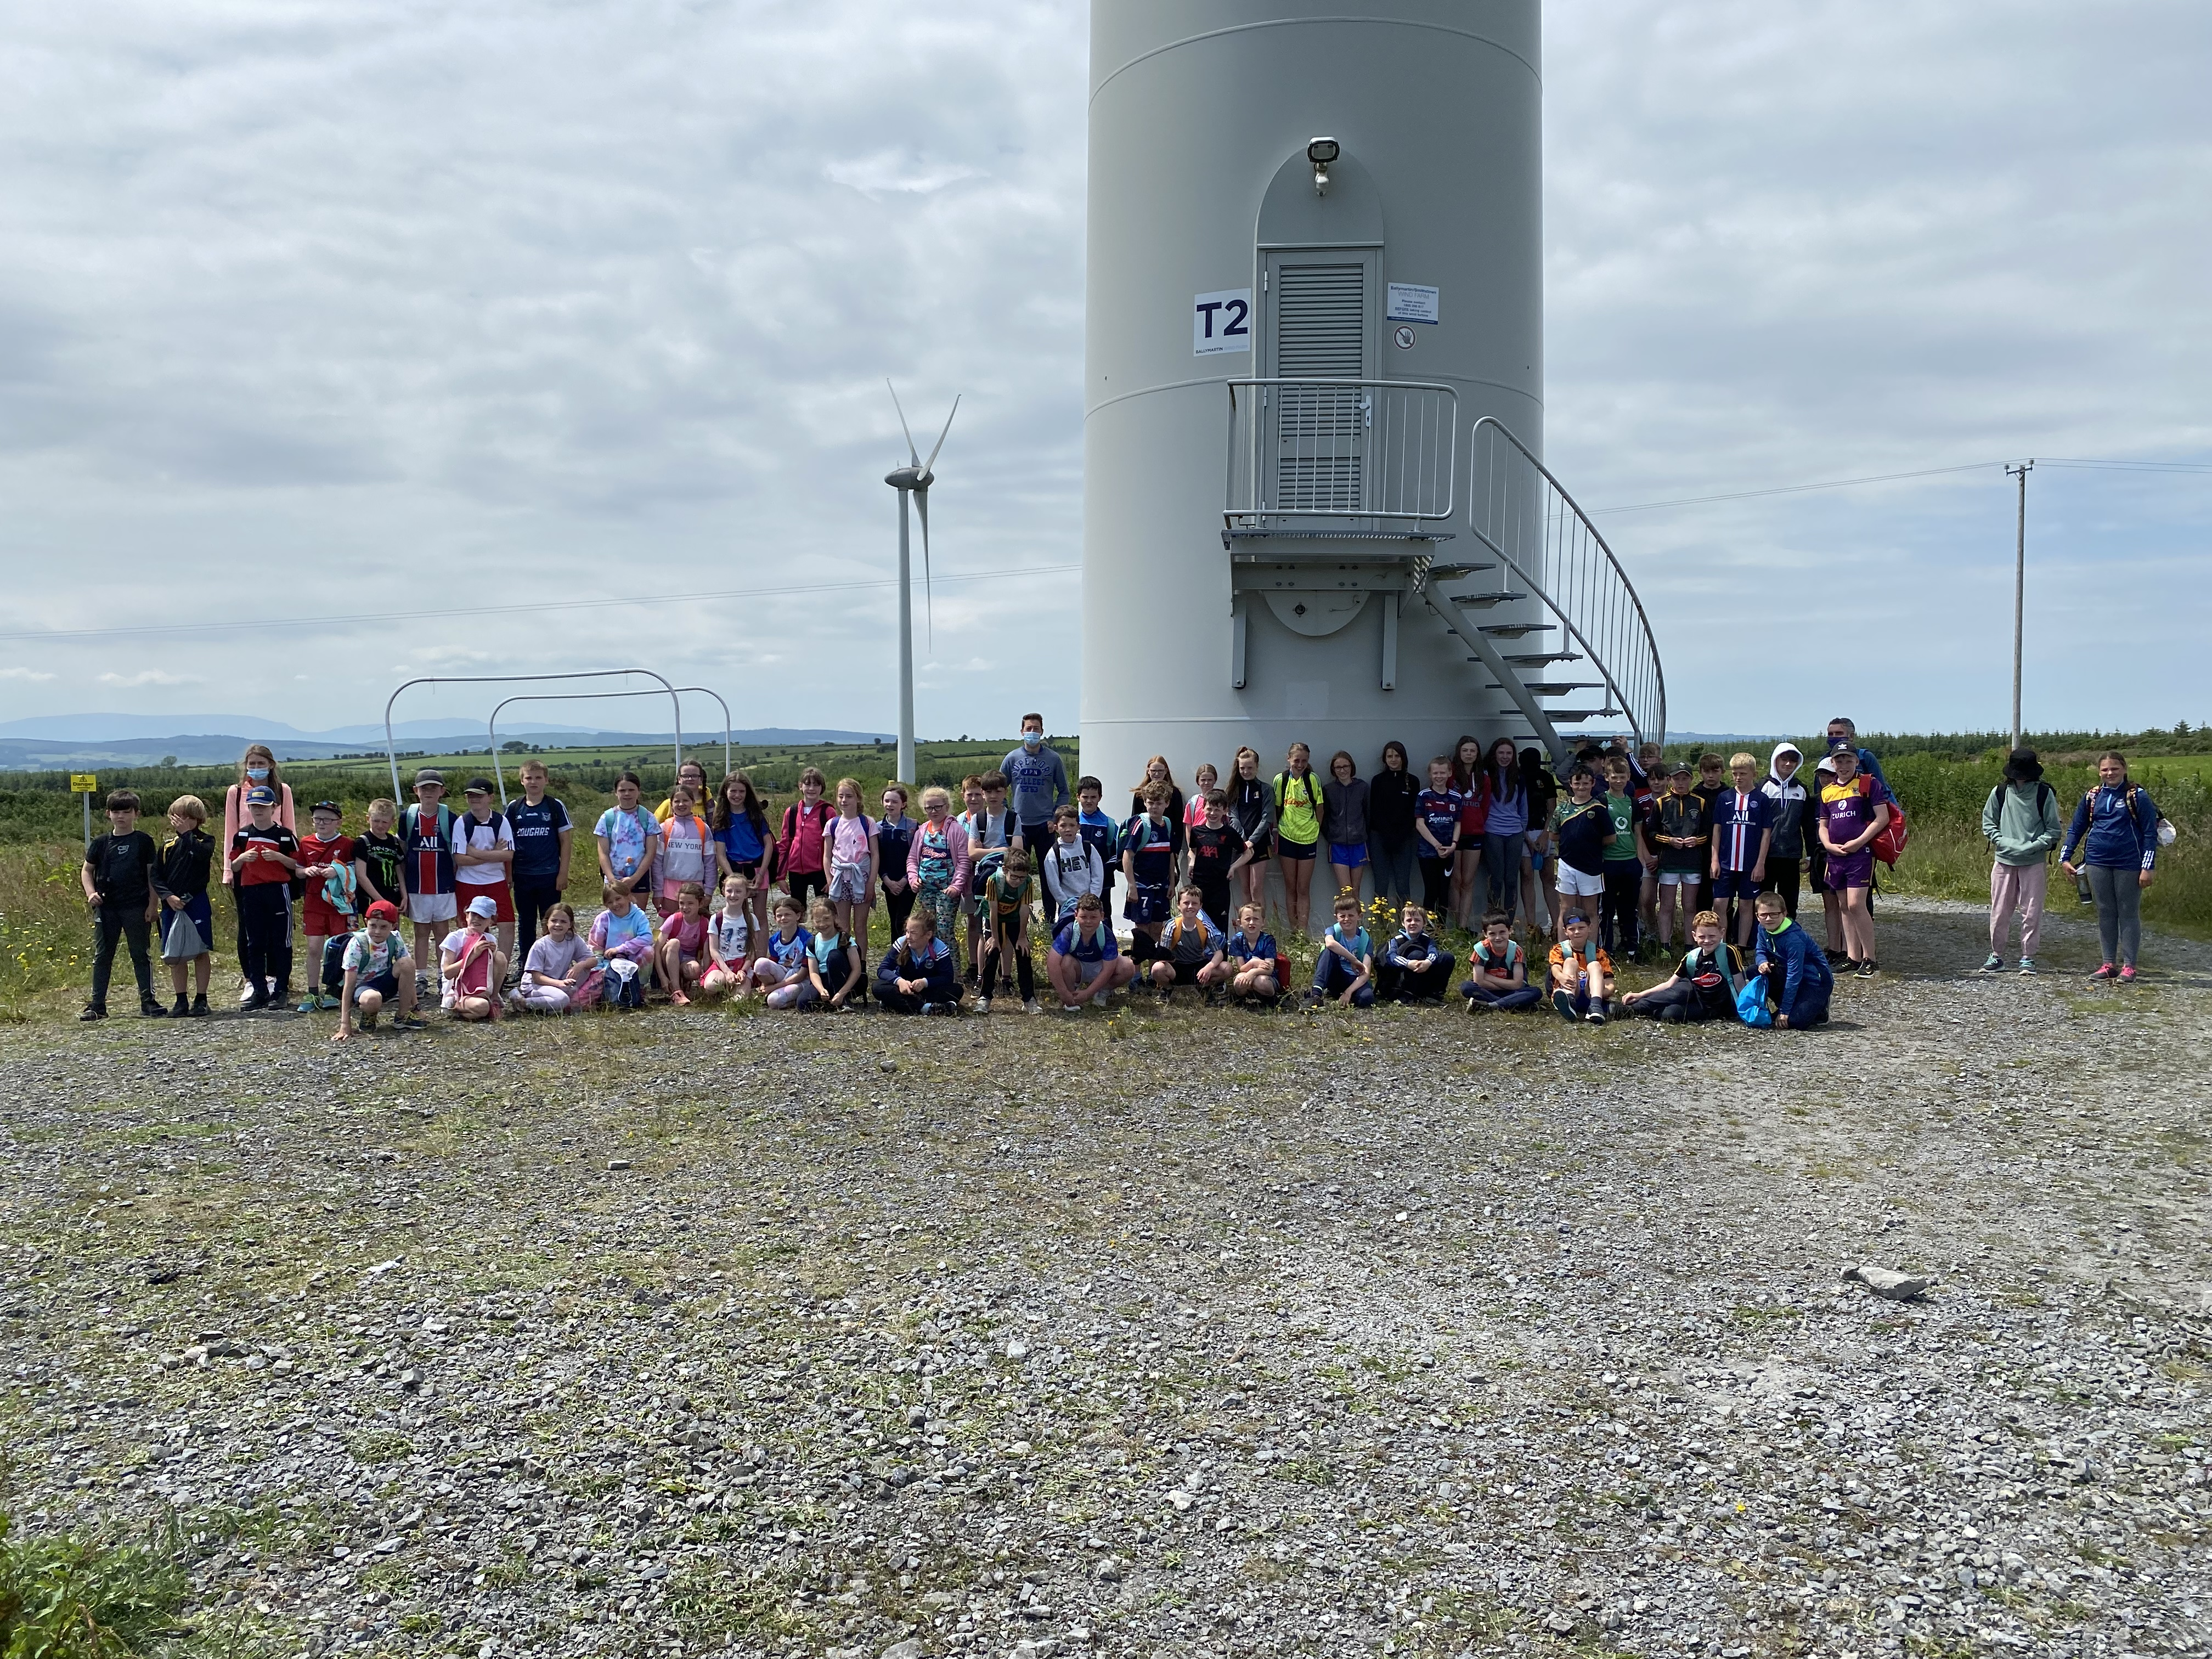 A visit to the windfarm.